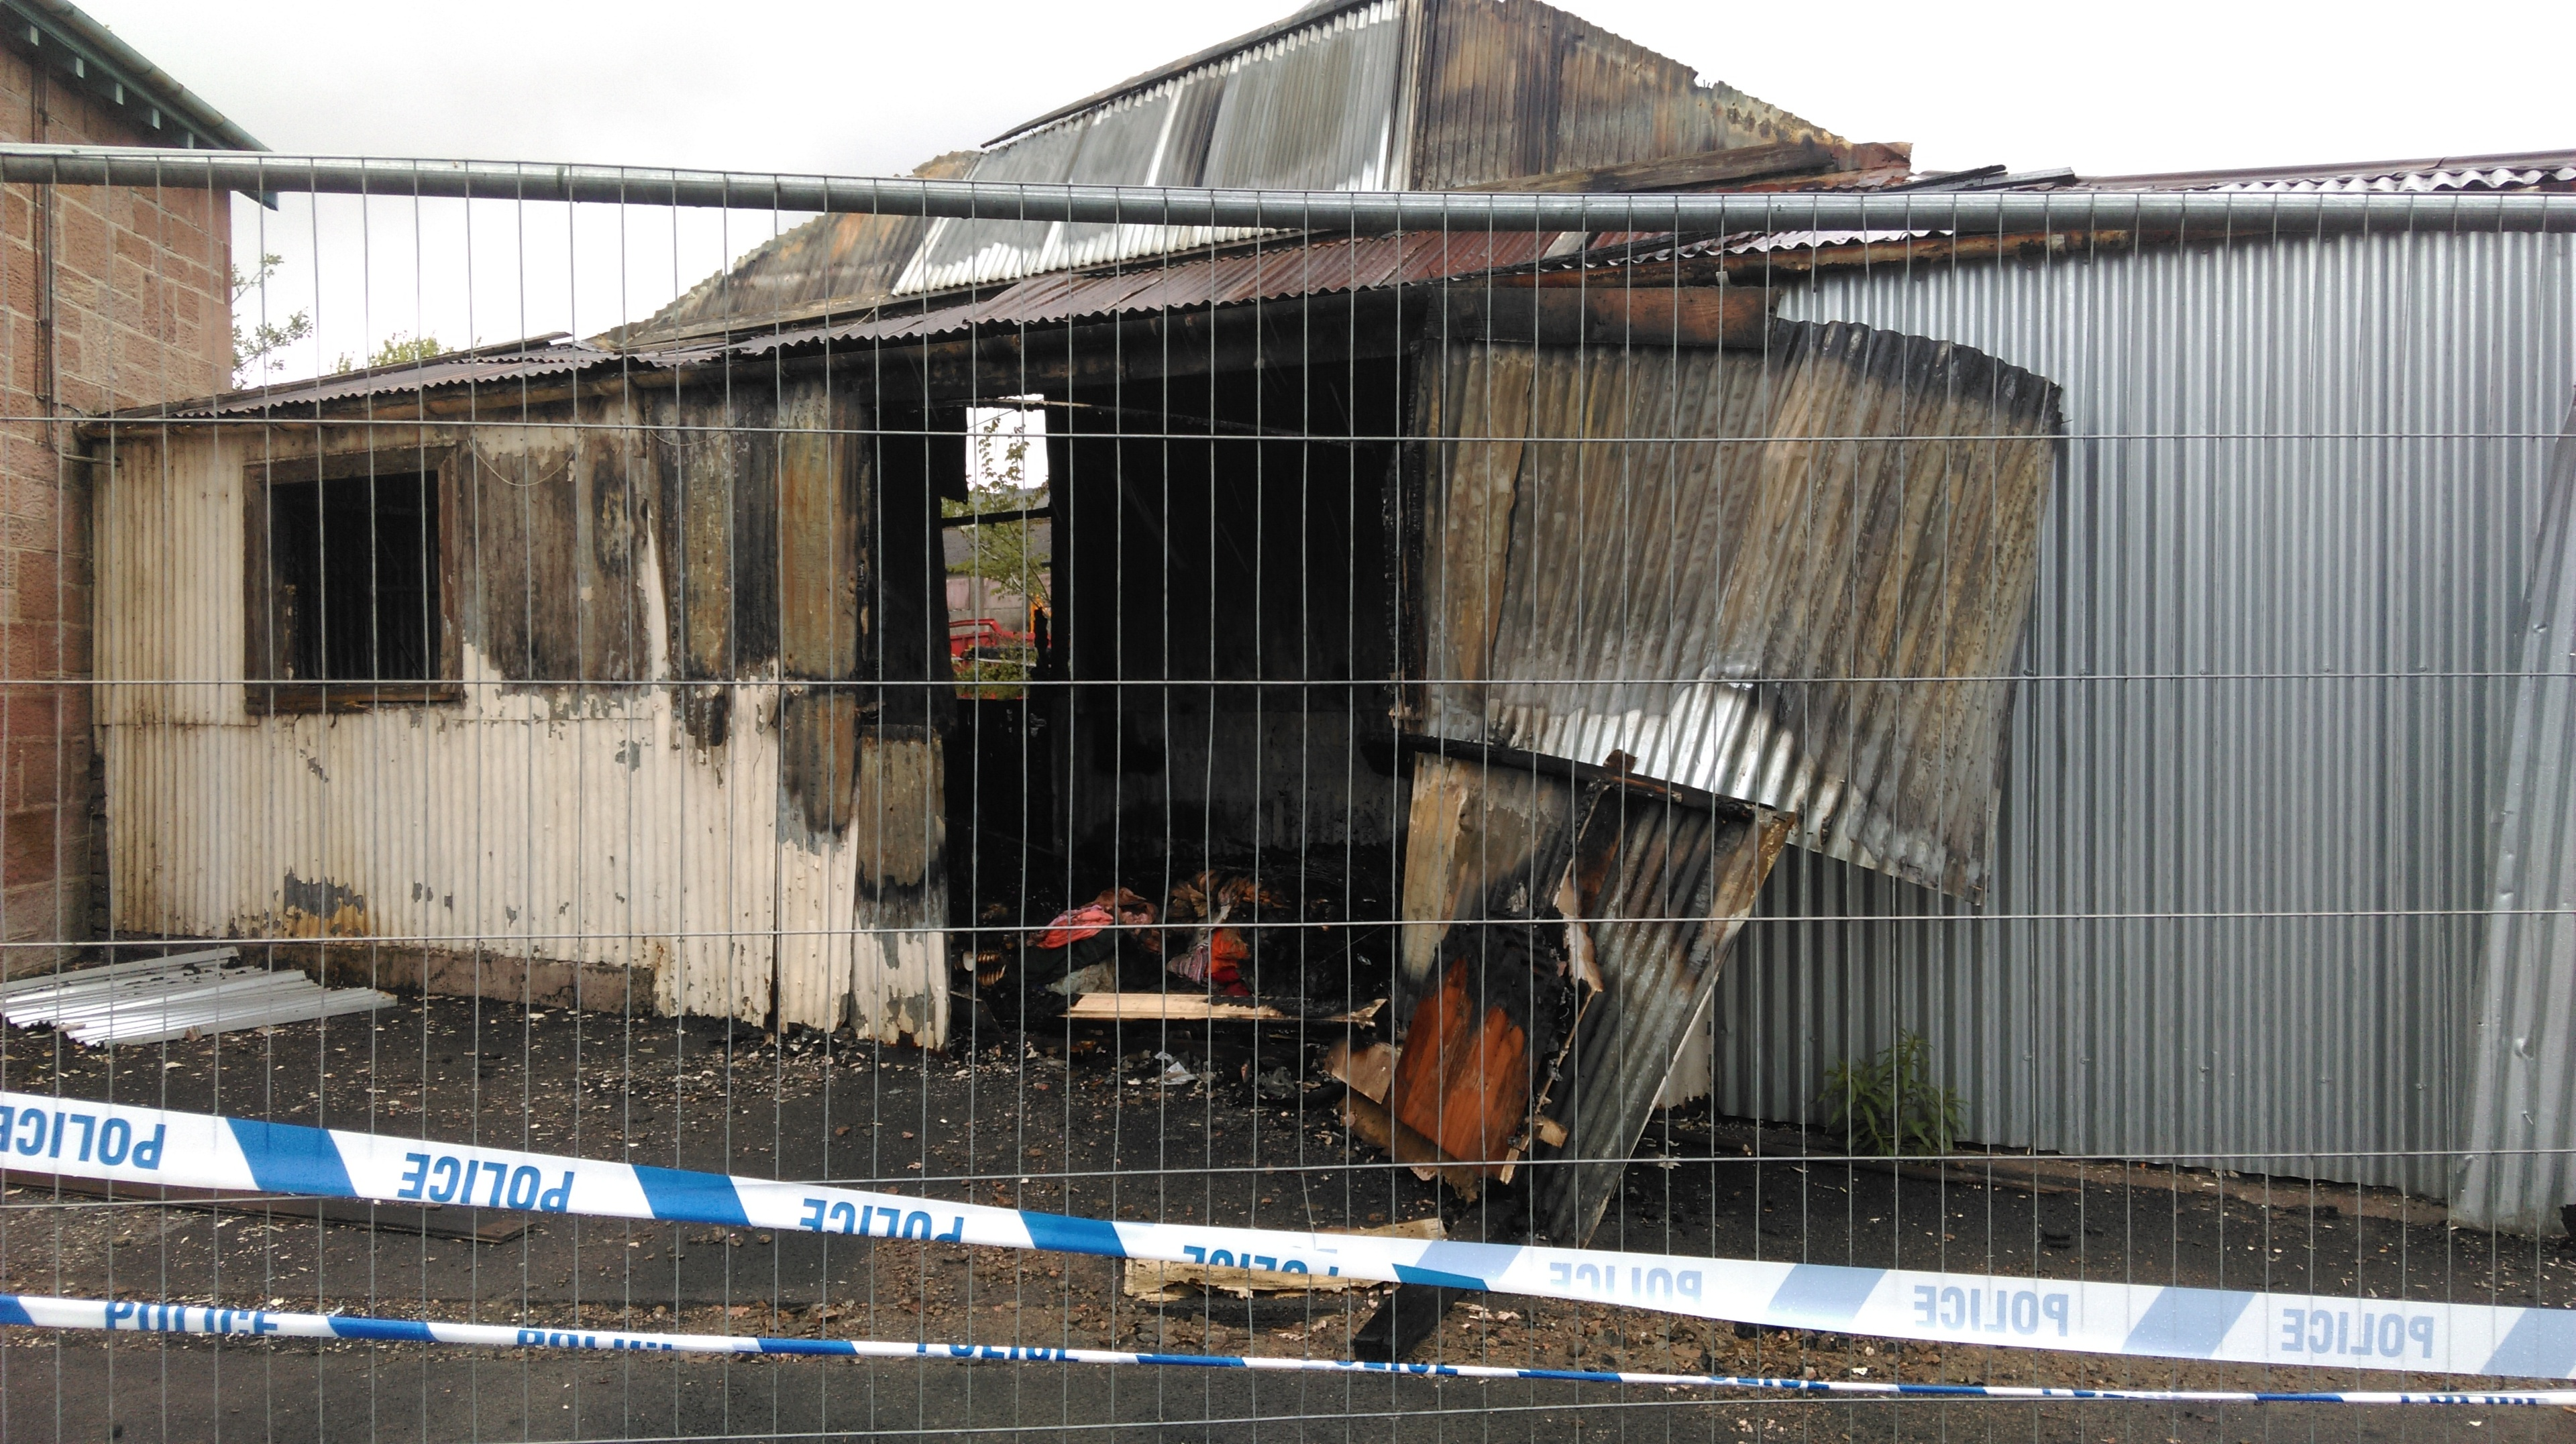 The Dingwall Players clubrooms were destroyed in the fire